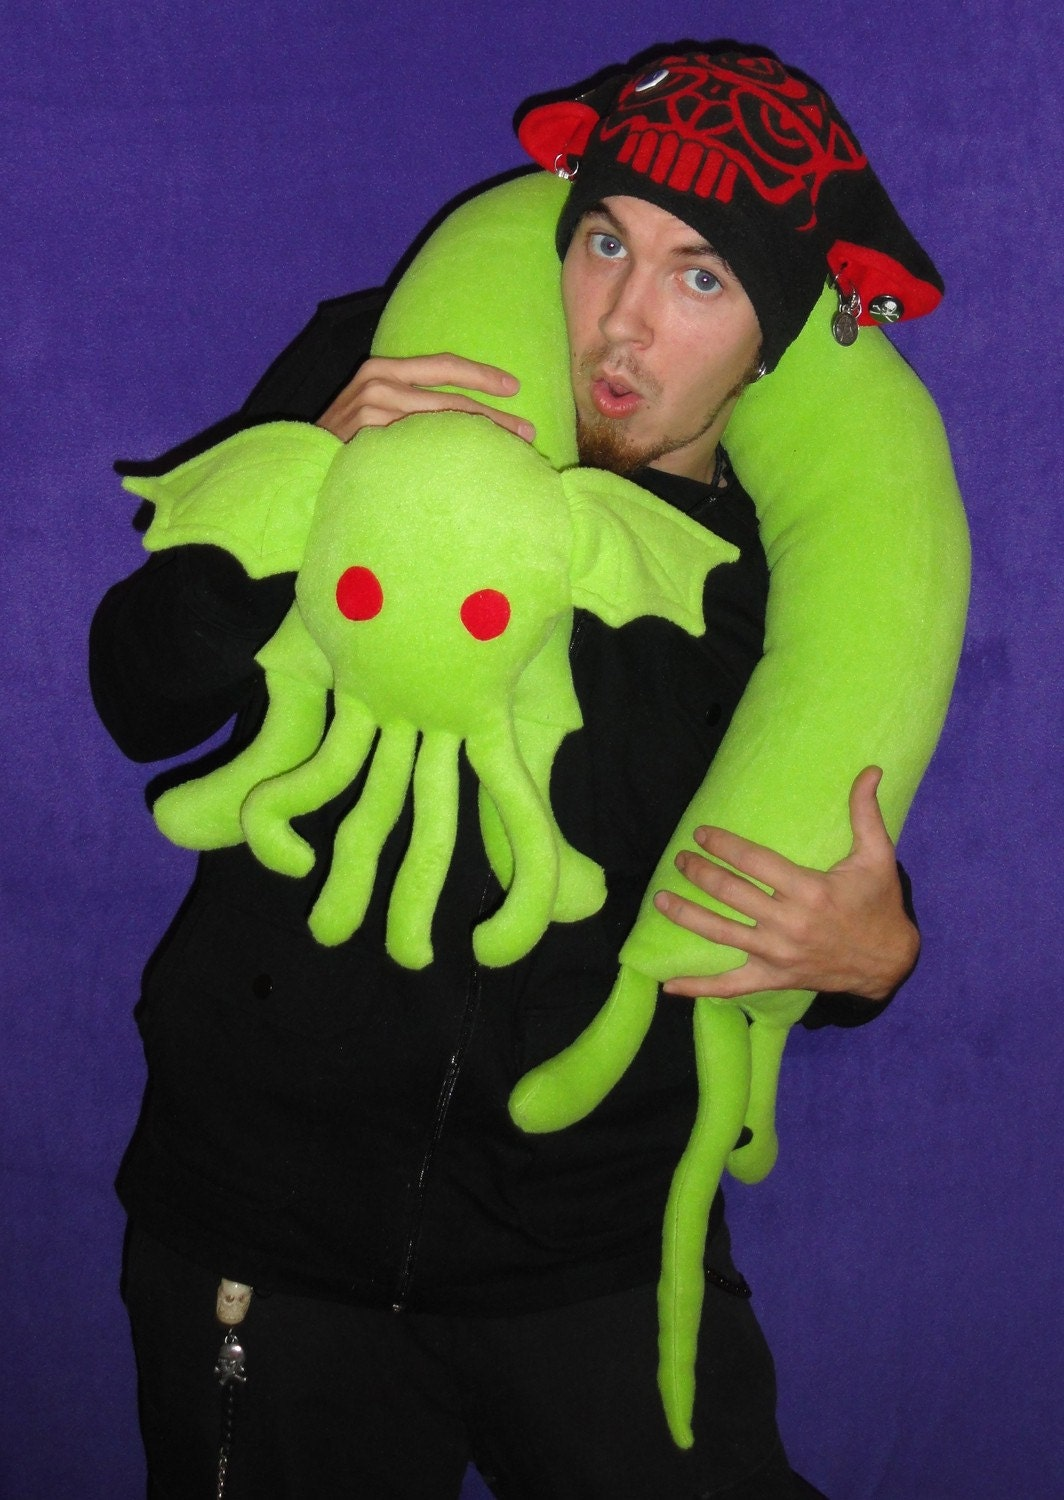 coussin cthulhu